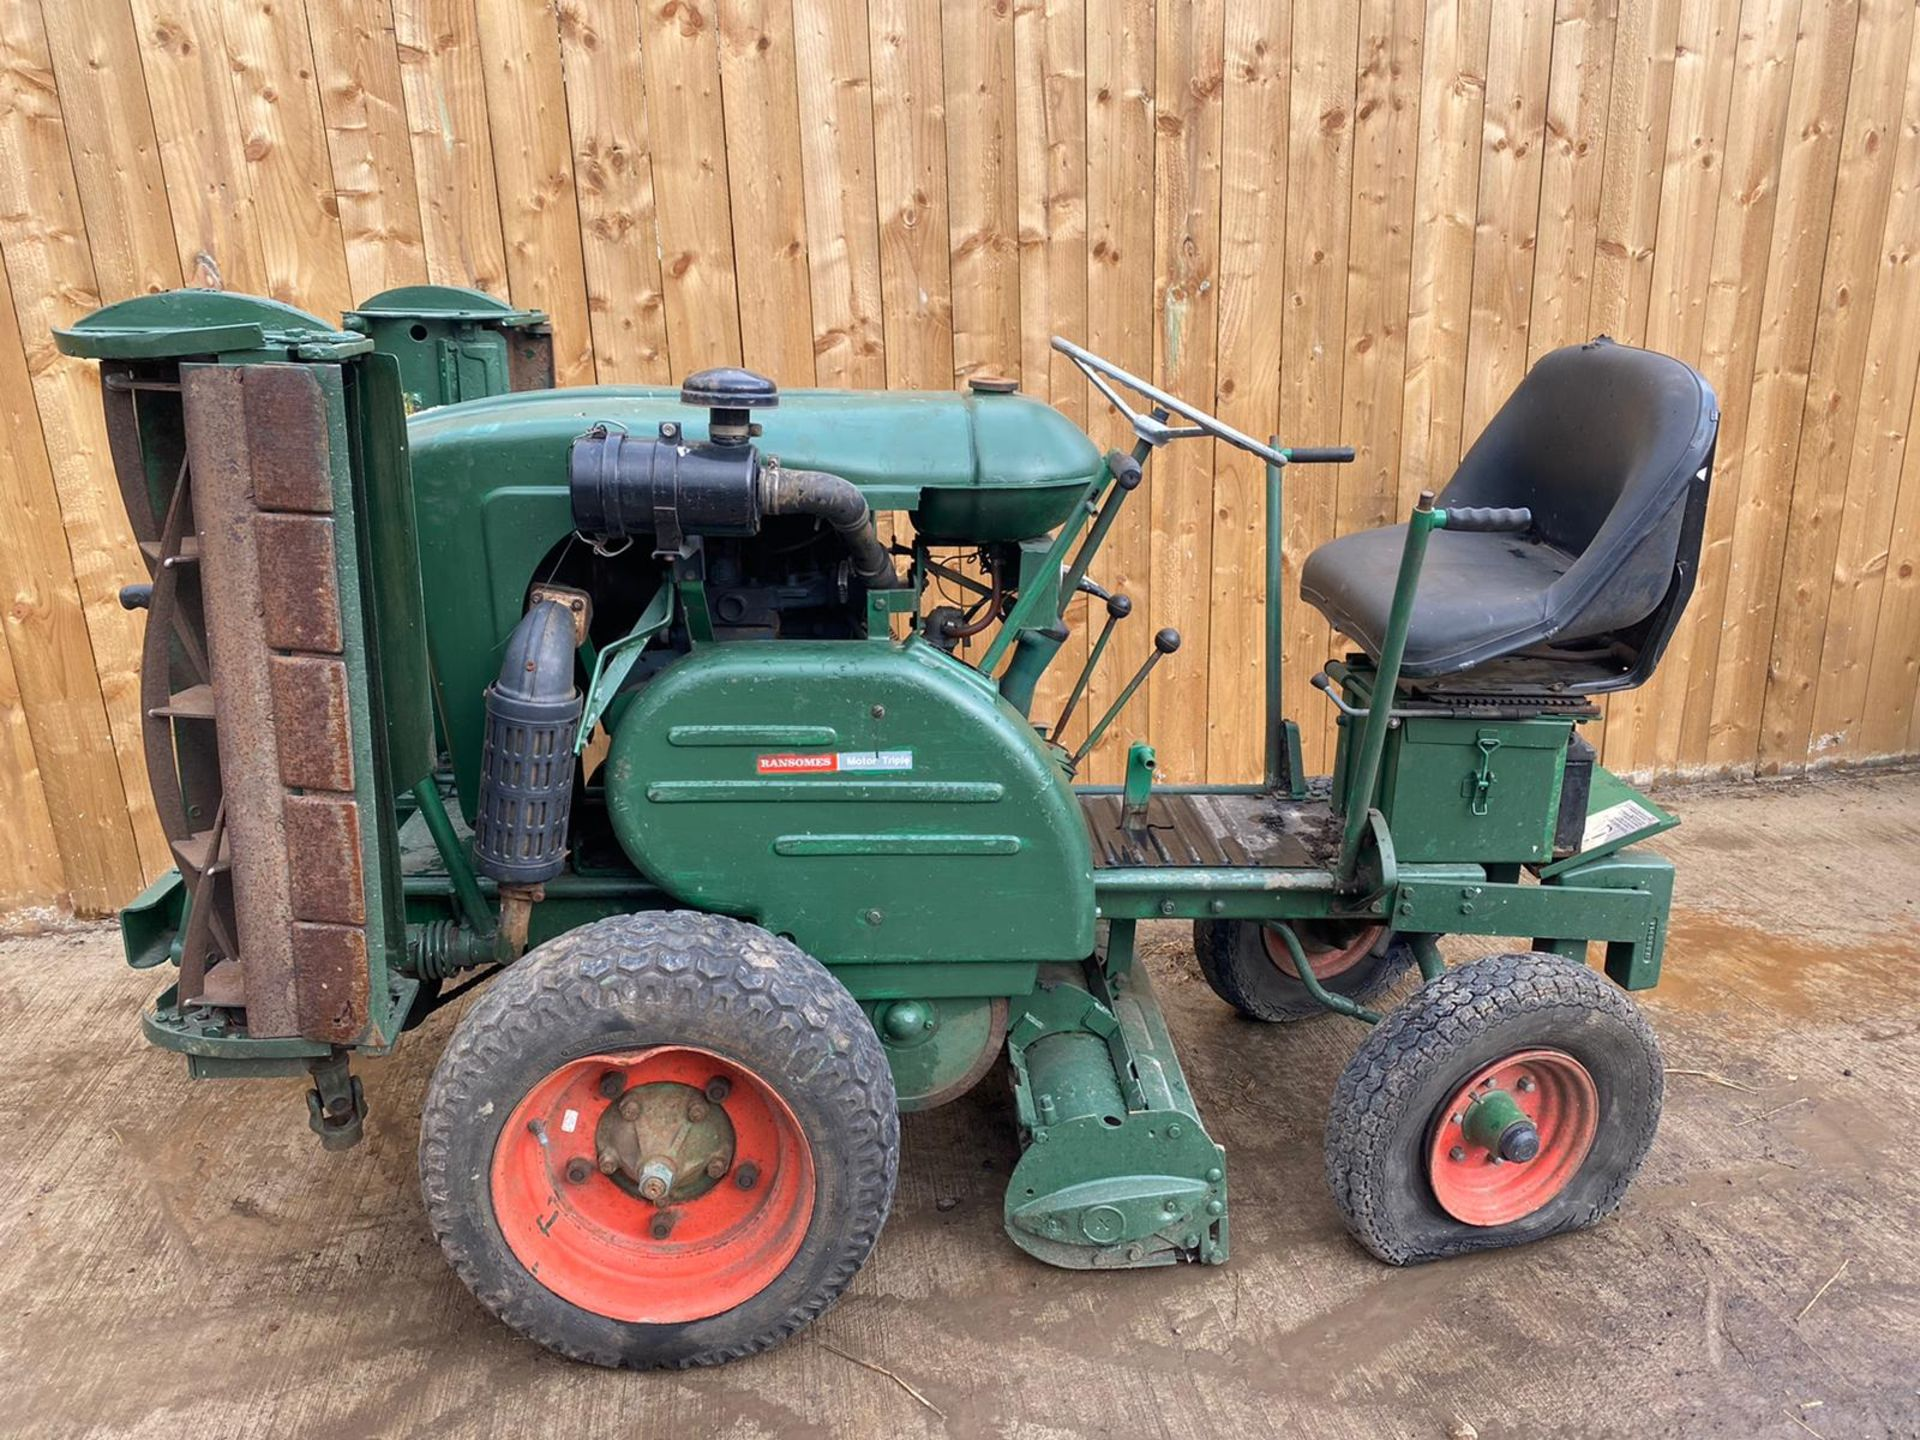 RANSOMES MOTOR TRIPLE DIESEL MOWER, KUBOTA DIESEL ENGINE, STARTS, FIRST TIME, RUNS, DRIVES, CUTS